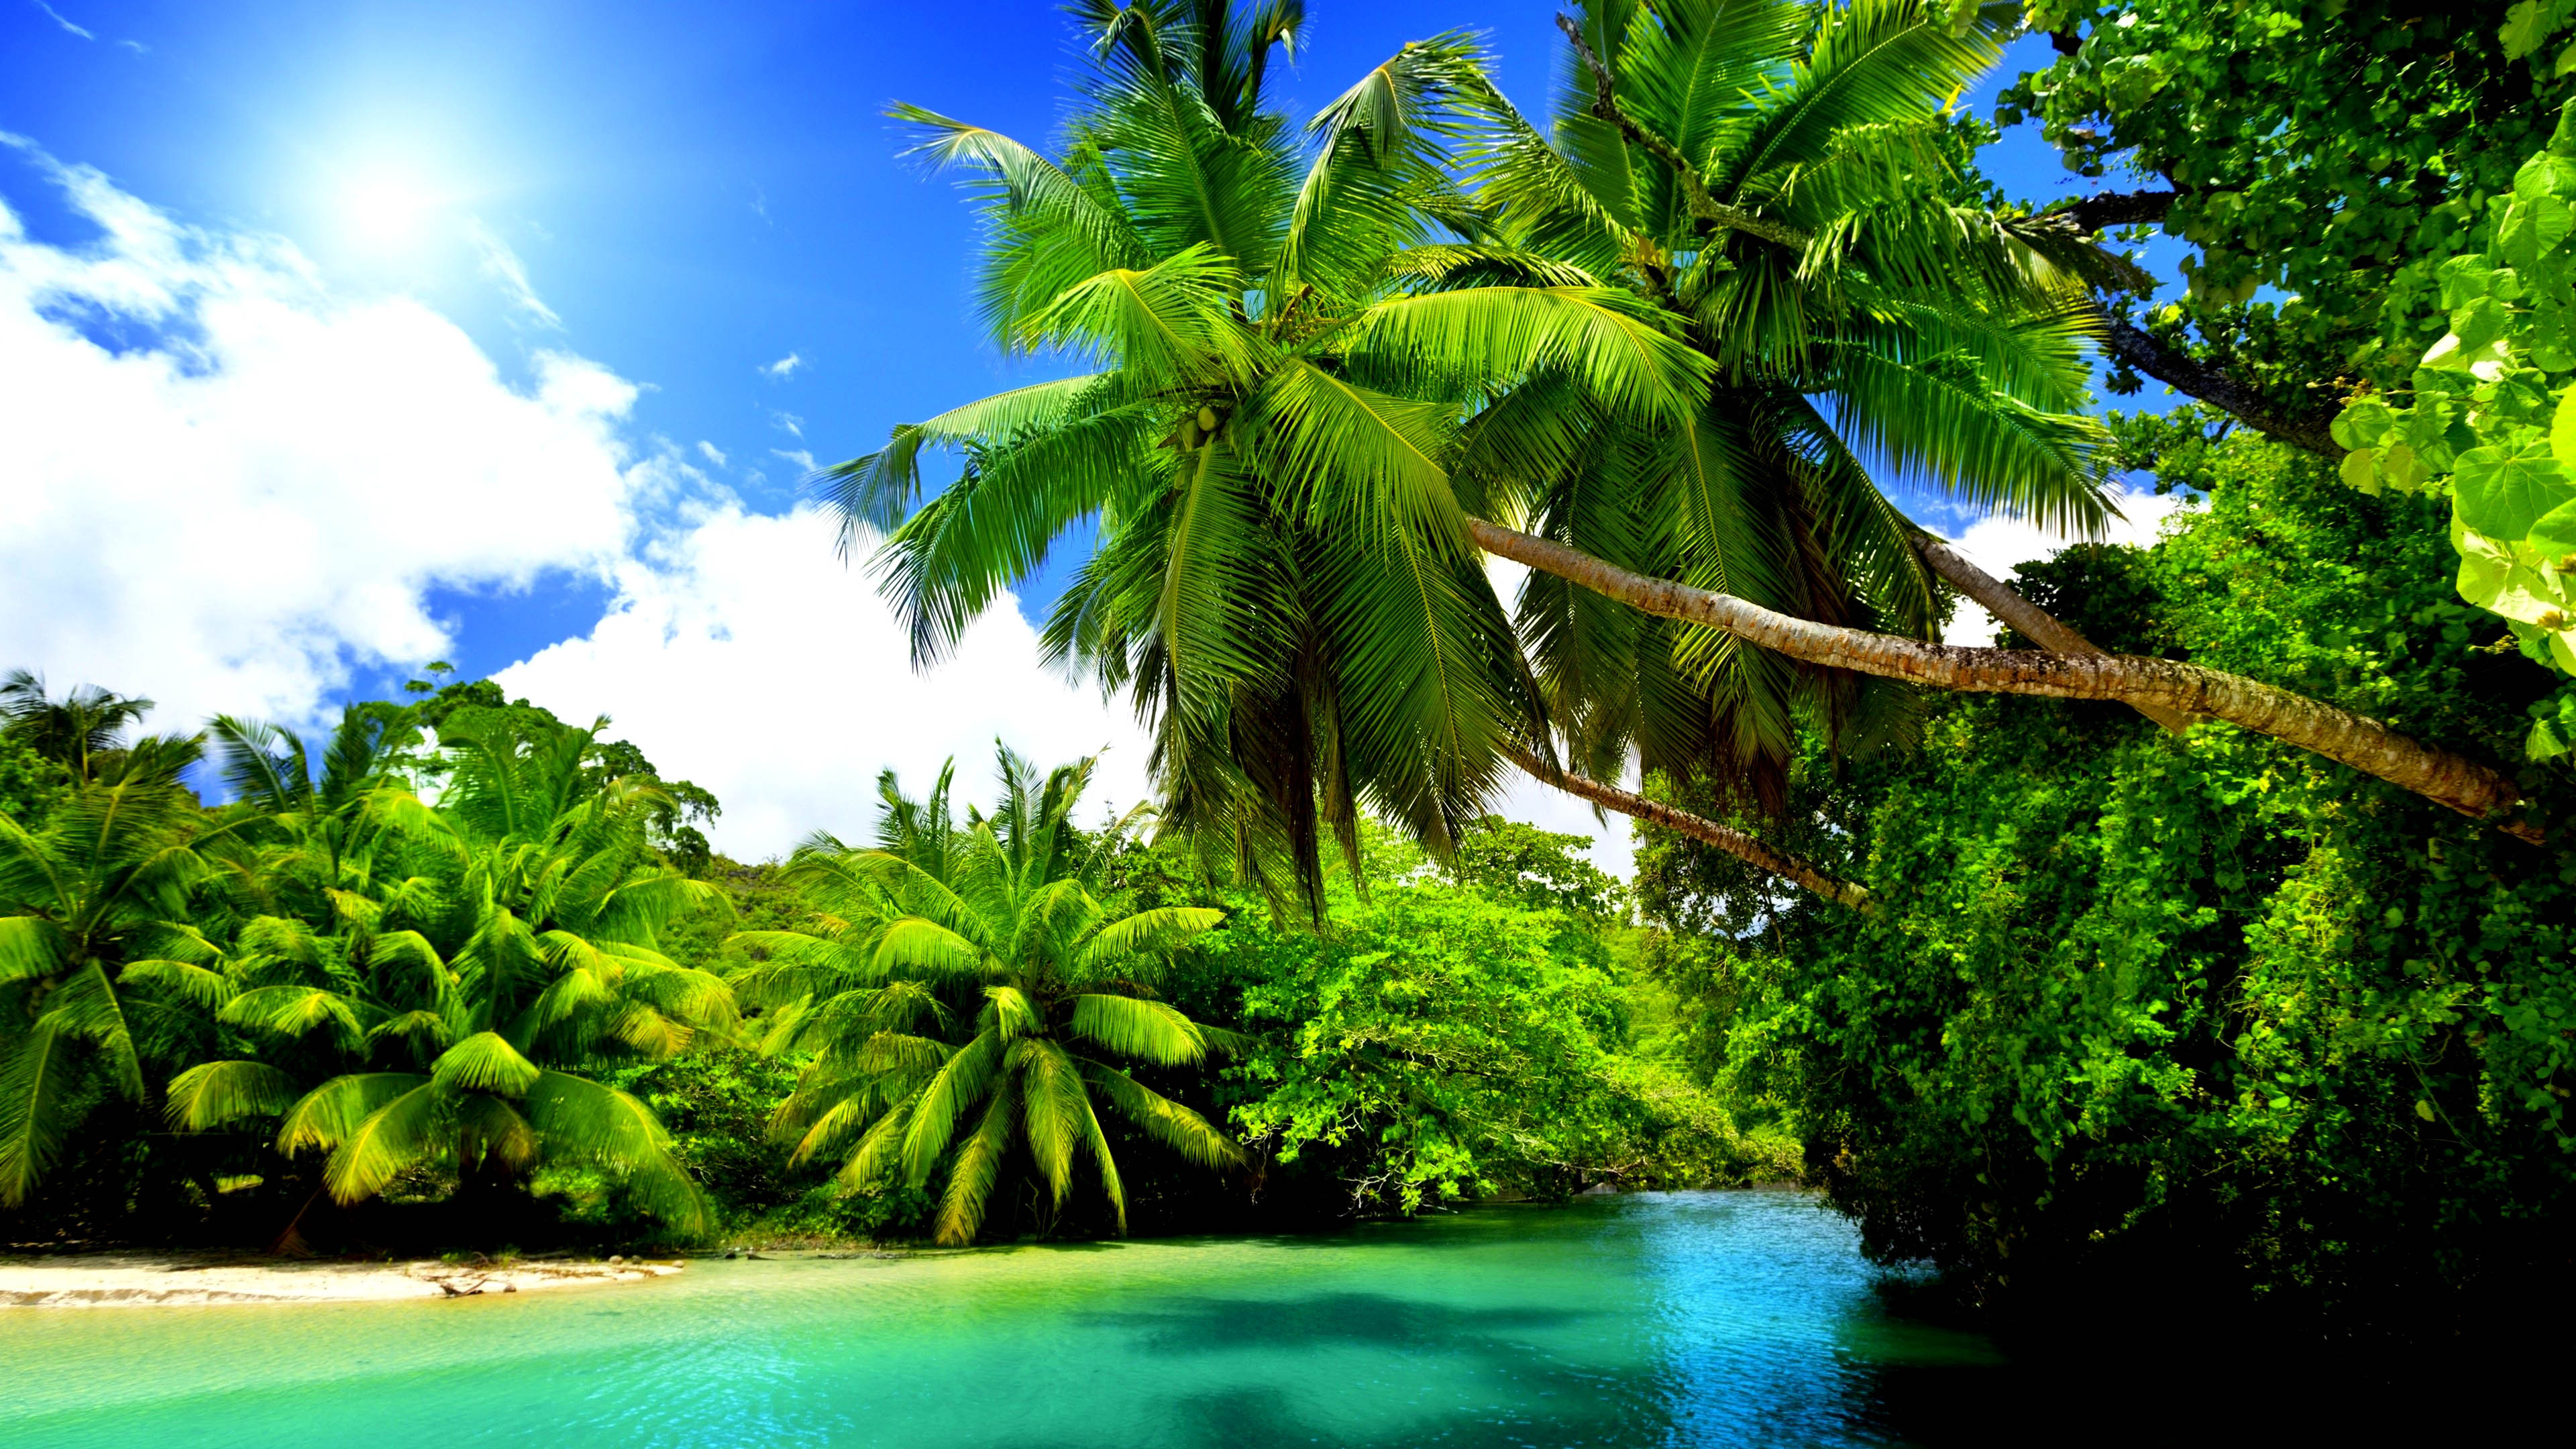 10 Best Tropical Beach Desktop Backgrounds Full Hd 1920: 4K Beach Wallpapers High Quality